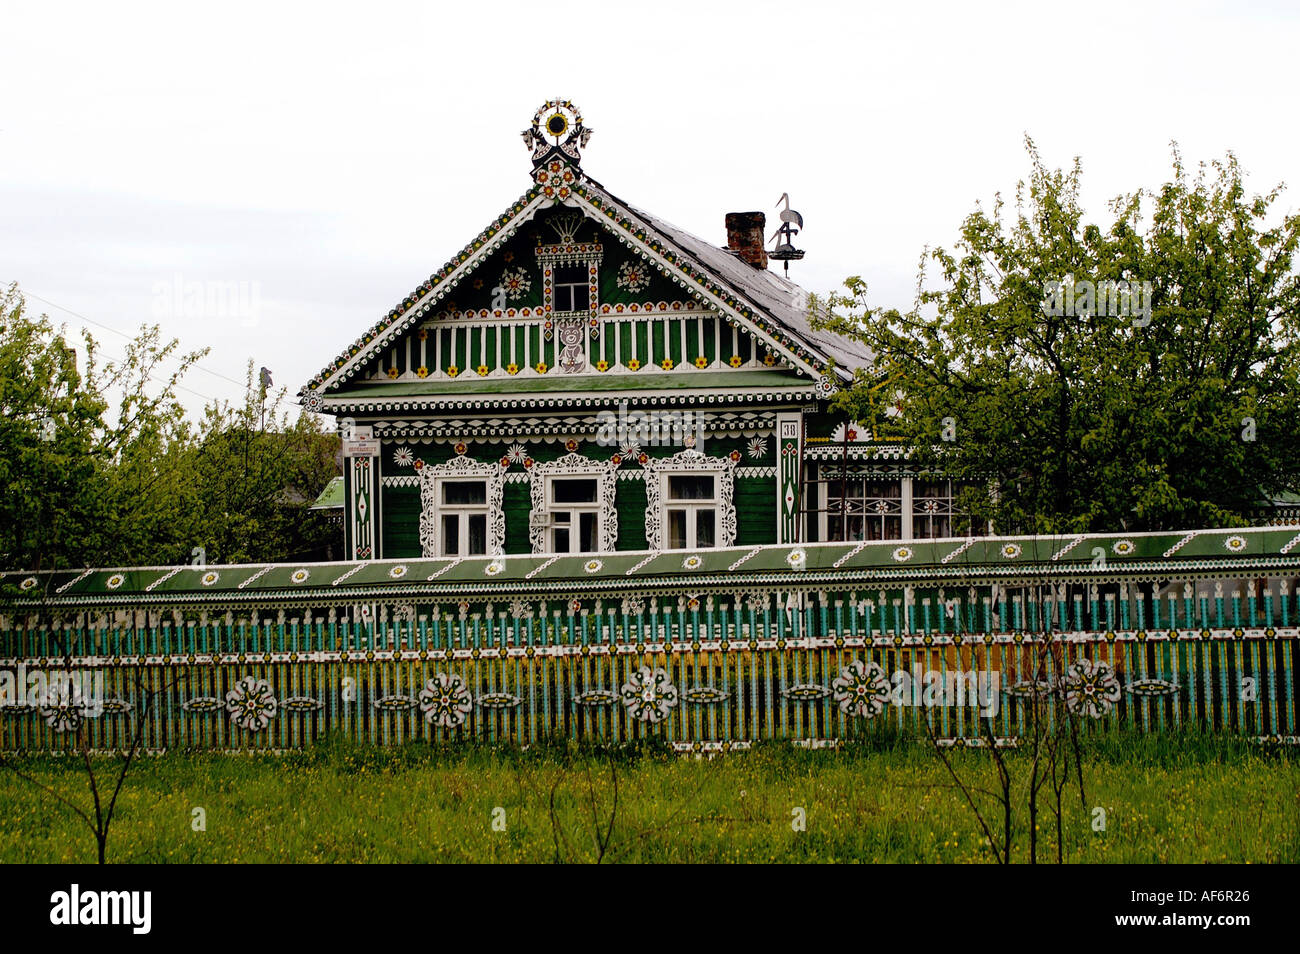 geography / travel, Russia, landscapes, country cottage, landscape at Sergijew Possad, exterior view, house, farmhouse, coloured painted, painting, fence, countryside,  Russian, , Additional-Rights-Clearance-Info-Not-Available - Stock Image